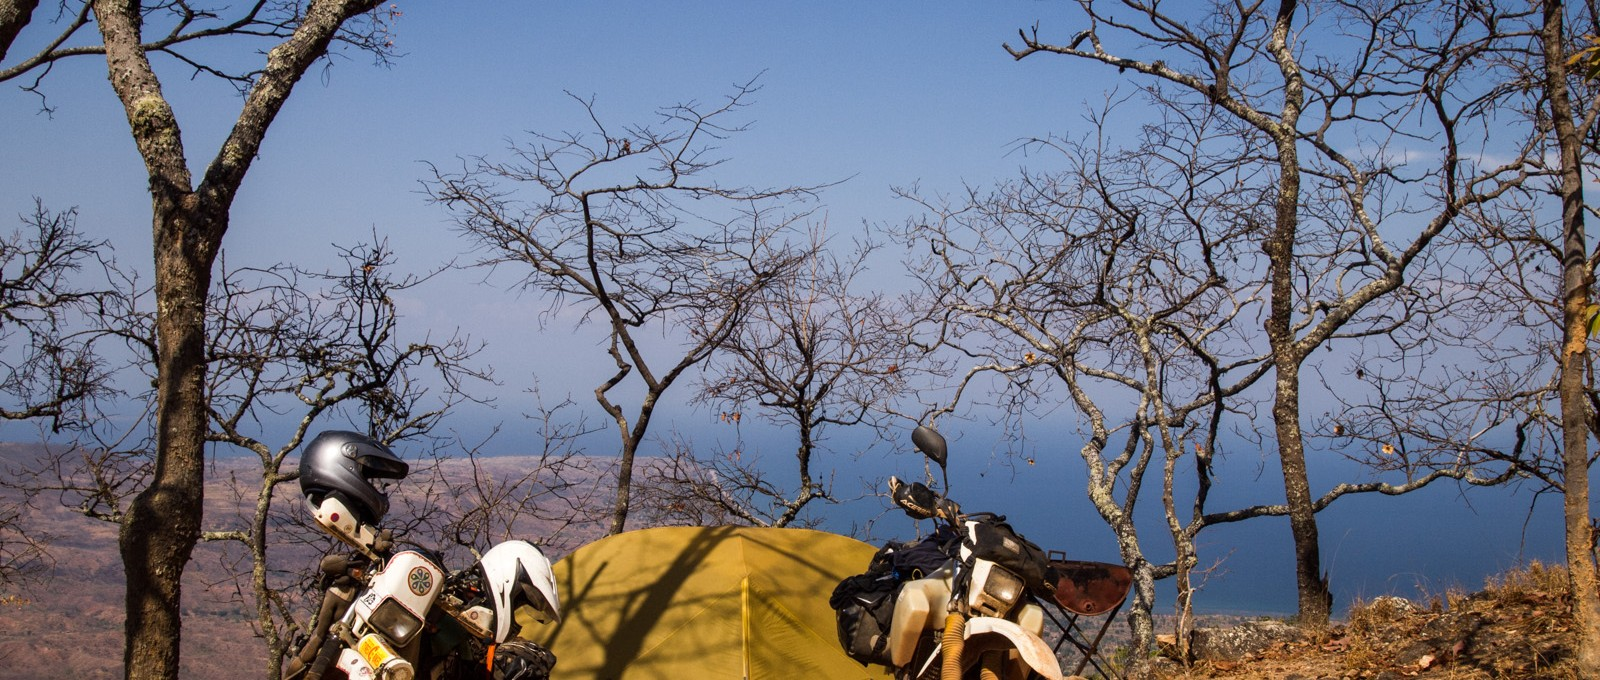 Camping At The Mushroom Fram, Livingstonia, Malawi